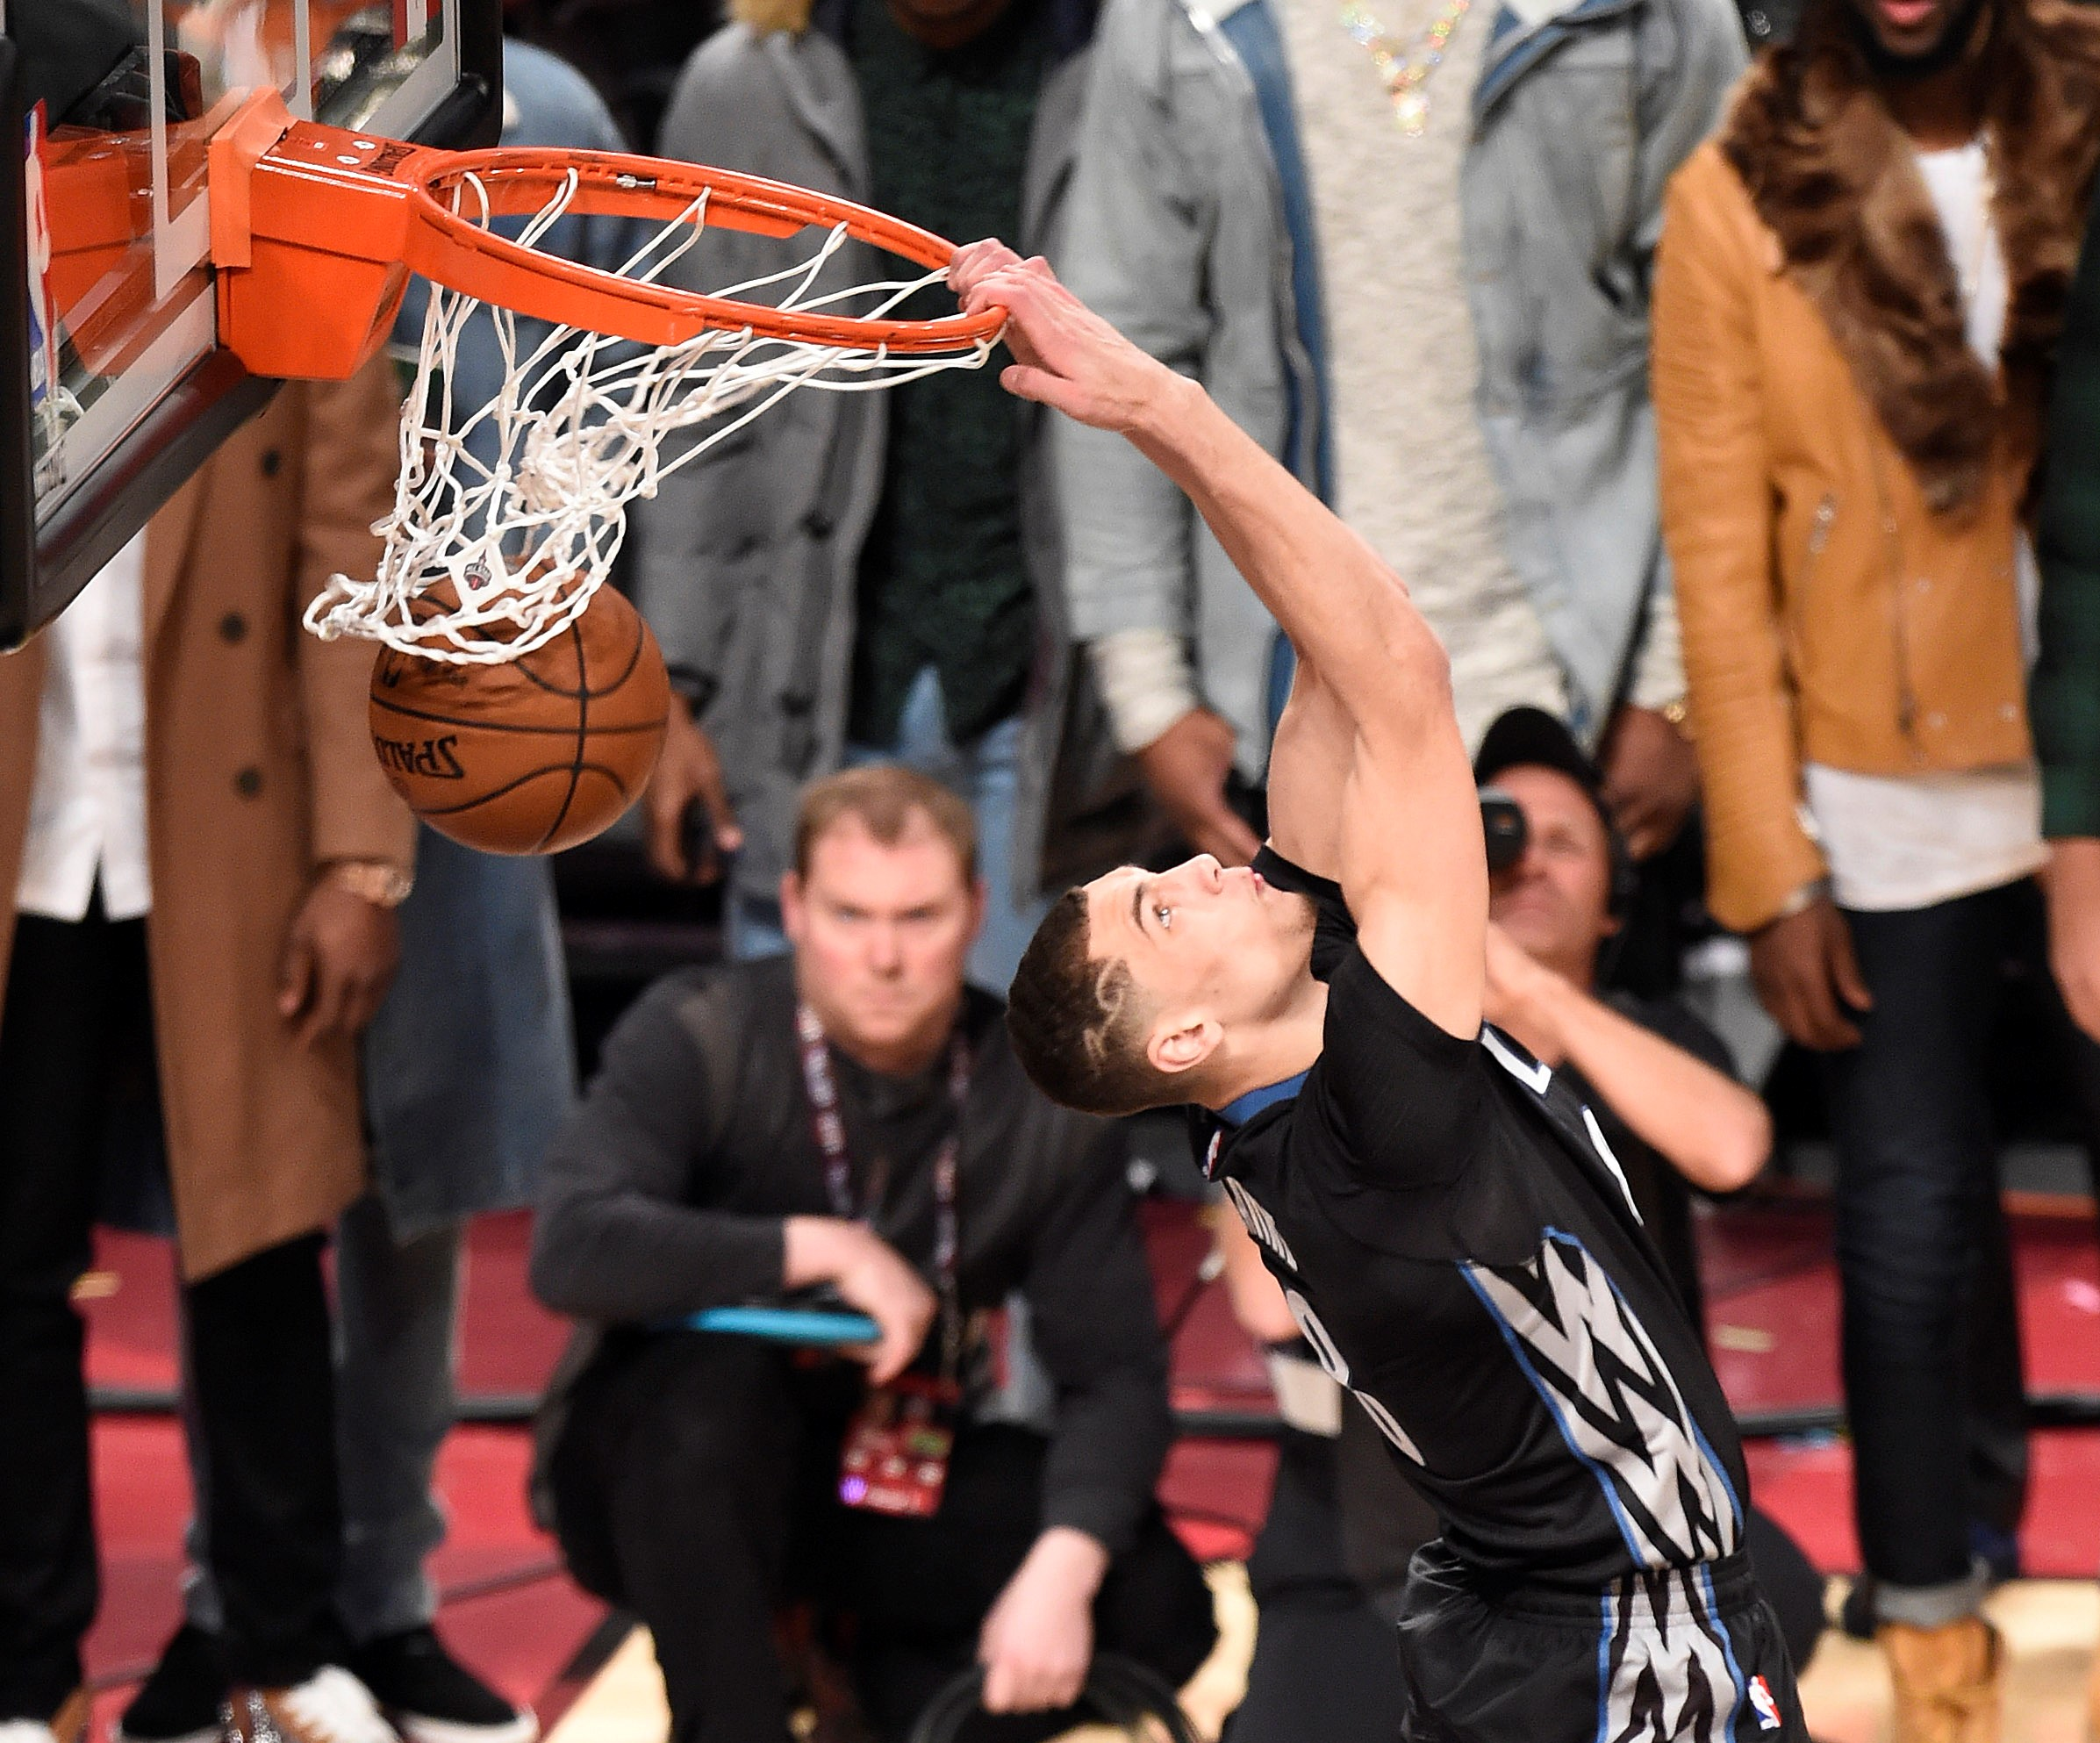 Feb 13, 2016; Toronto, Ontario, Canada; Minnesota Timberwolves player Zach LaVine (8) during the slam dunk contest during the All-Stars Saturday Night at Air Canada Centre. Mandatory Credit: Peter Llewellyn-USA TODAY Sports